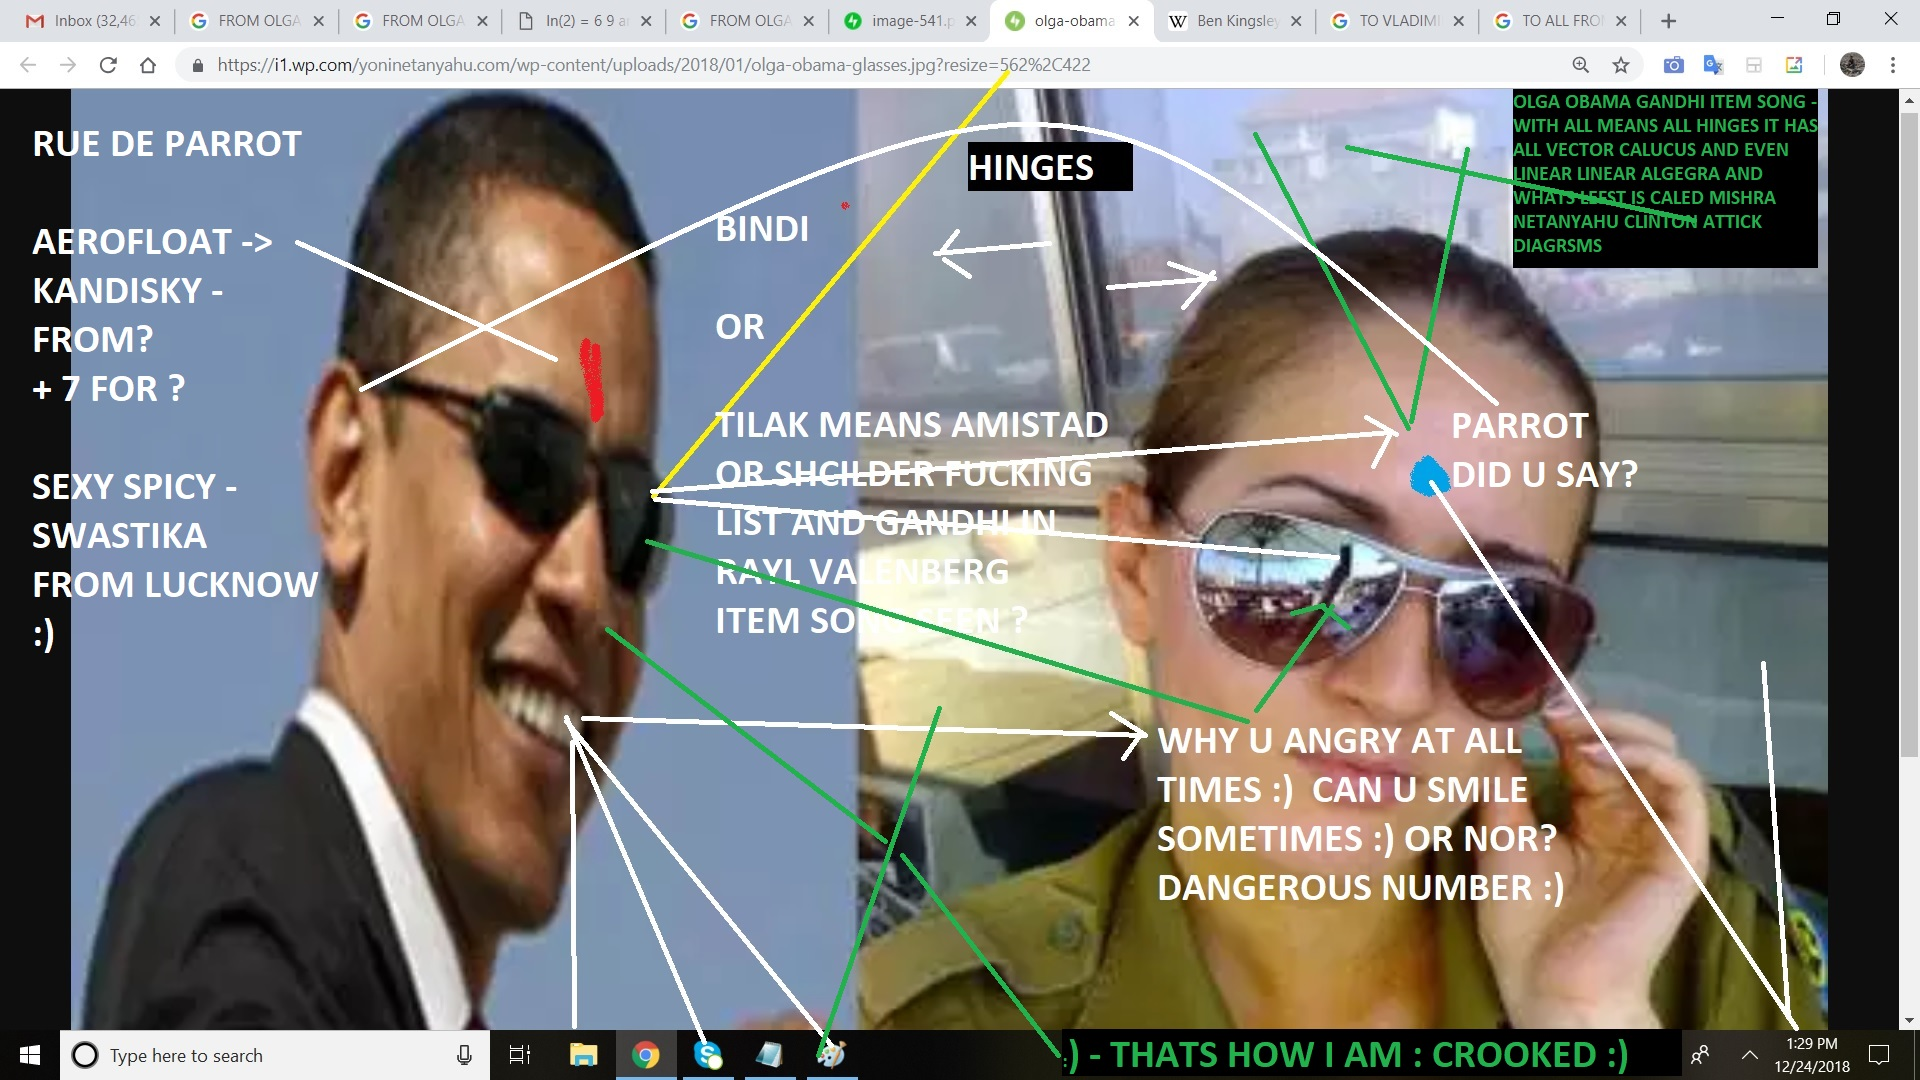 GANDHI OBAMA GANDHI ITEM SONG - WITH ALL MEANS ALL HINGES IT HAS ALL VECTOR CALUCUS AND EVEN LINEAR LINEAR ALGEGRA AND WHATS LEFST IS CALED MISHRA NETANYAHU CLINTON ATTICK DIAGRSMS